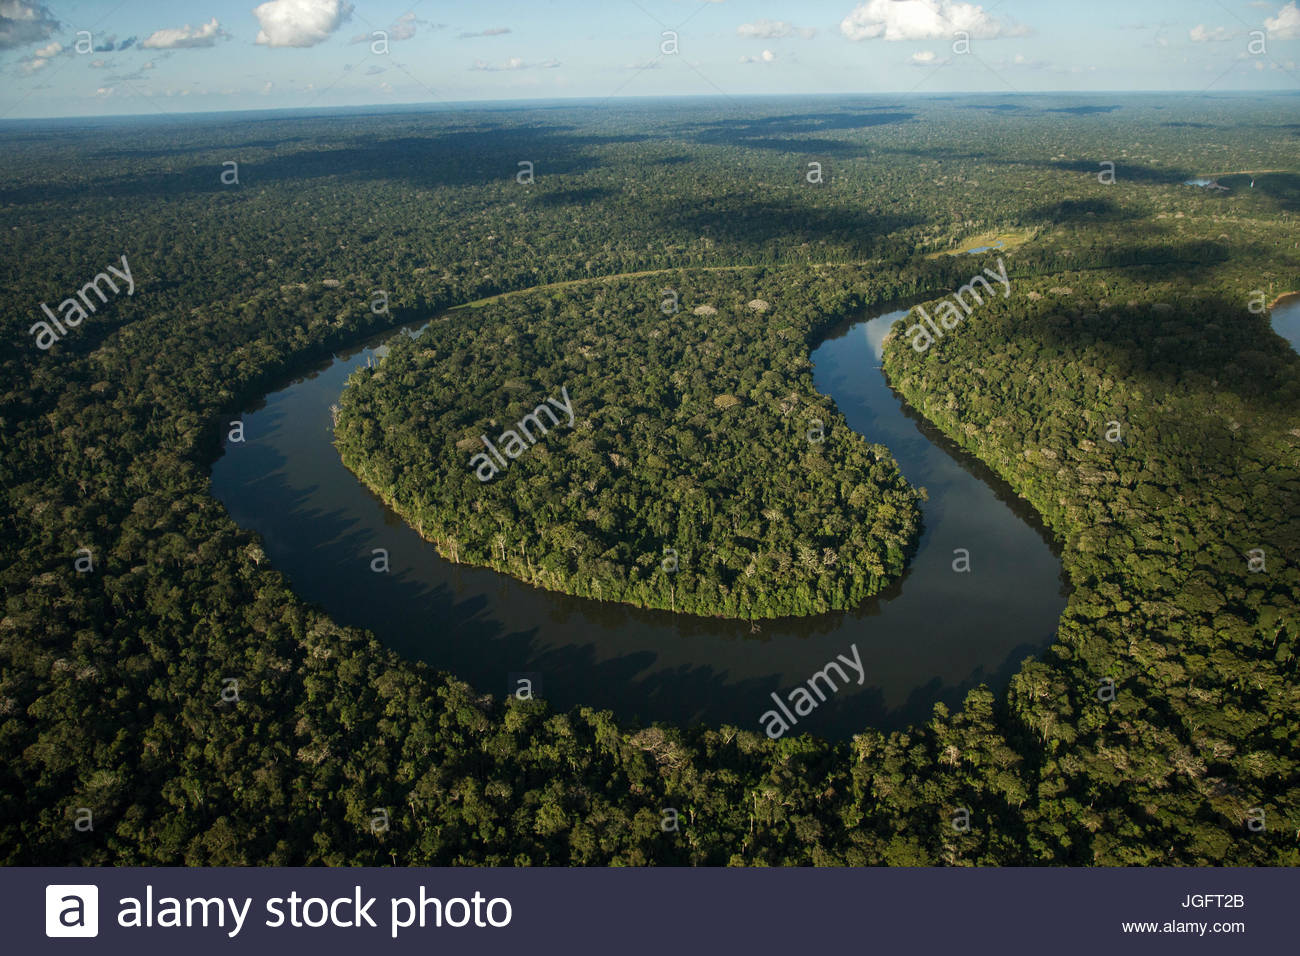 Cocha Salvador, oxbow lake, is key habitat in Manu National Park. - Stock Image